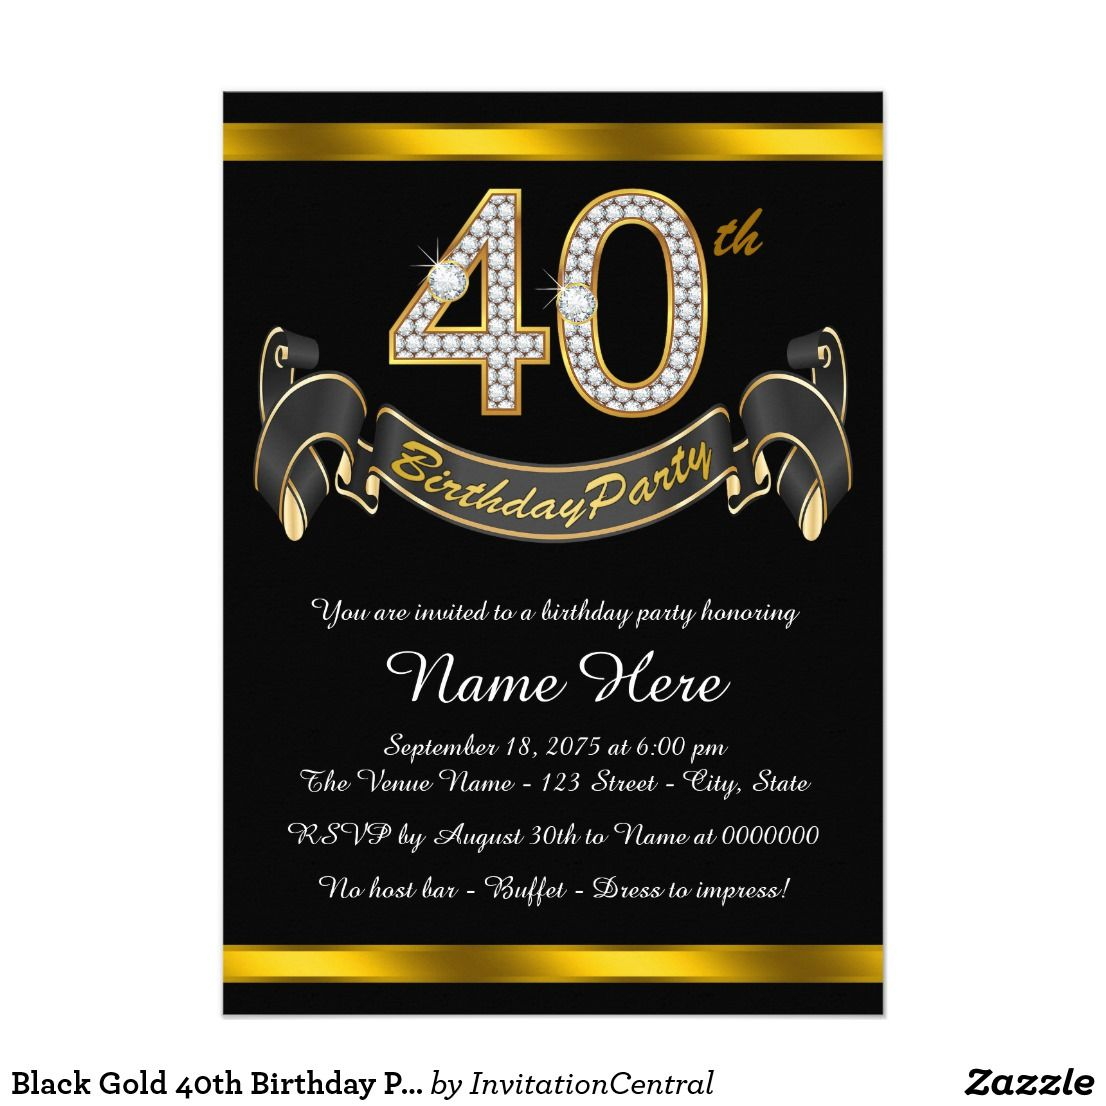 Black Gold 40th Birthday Party Invitation In 2018